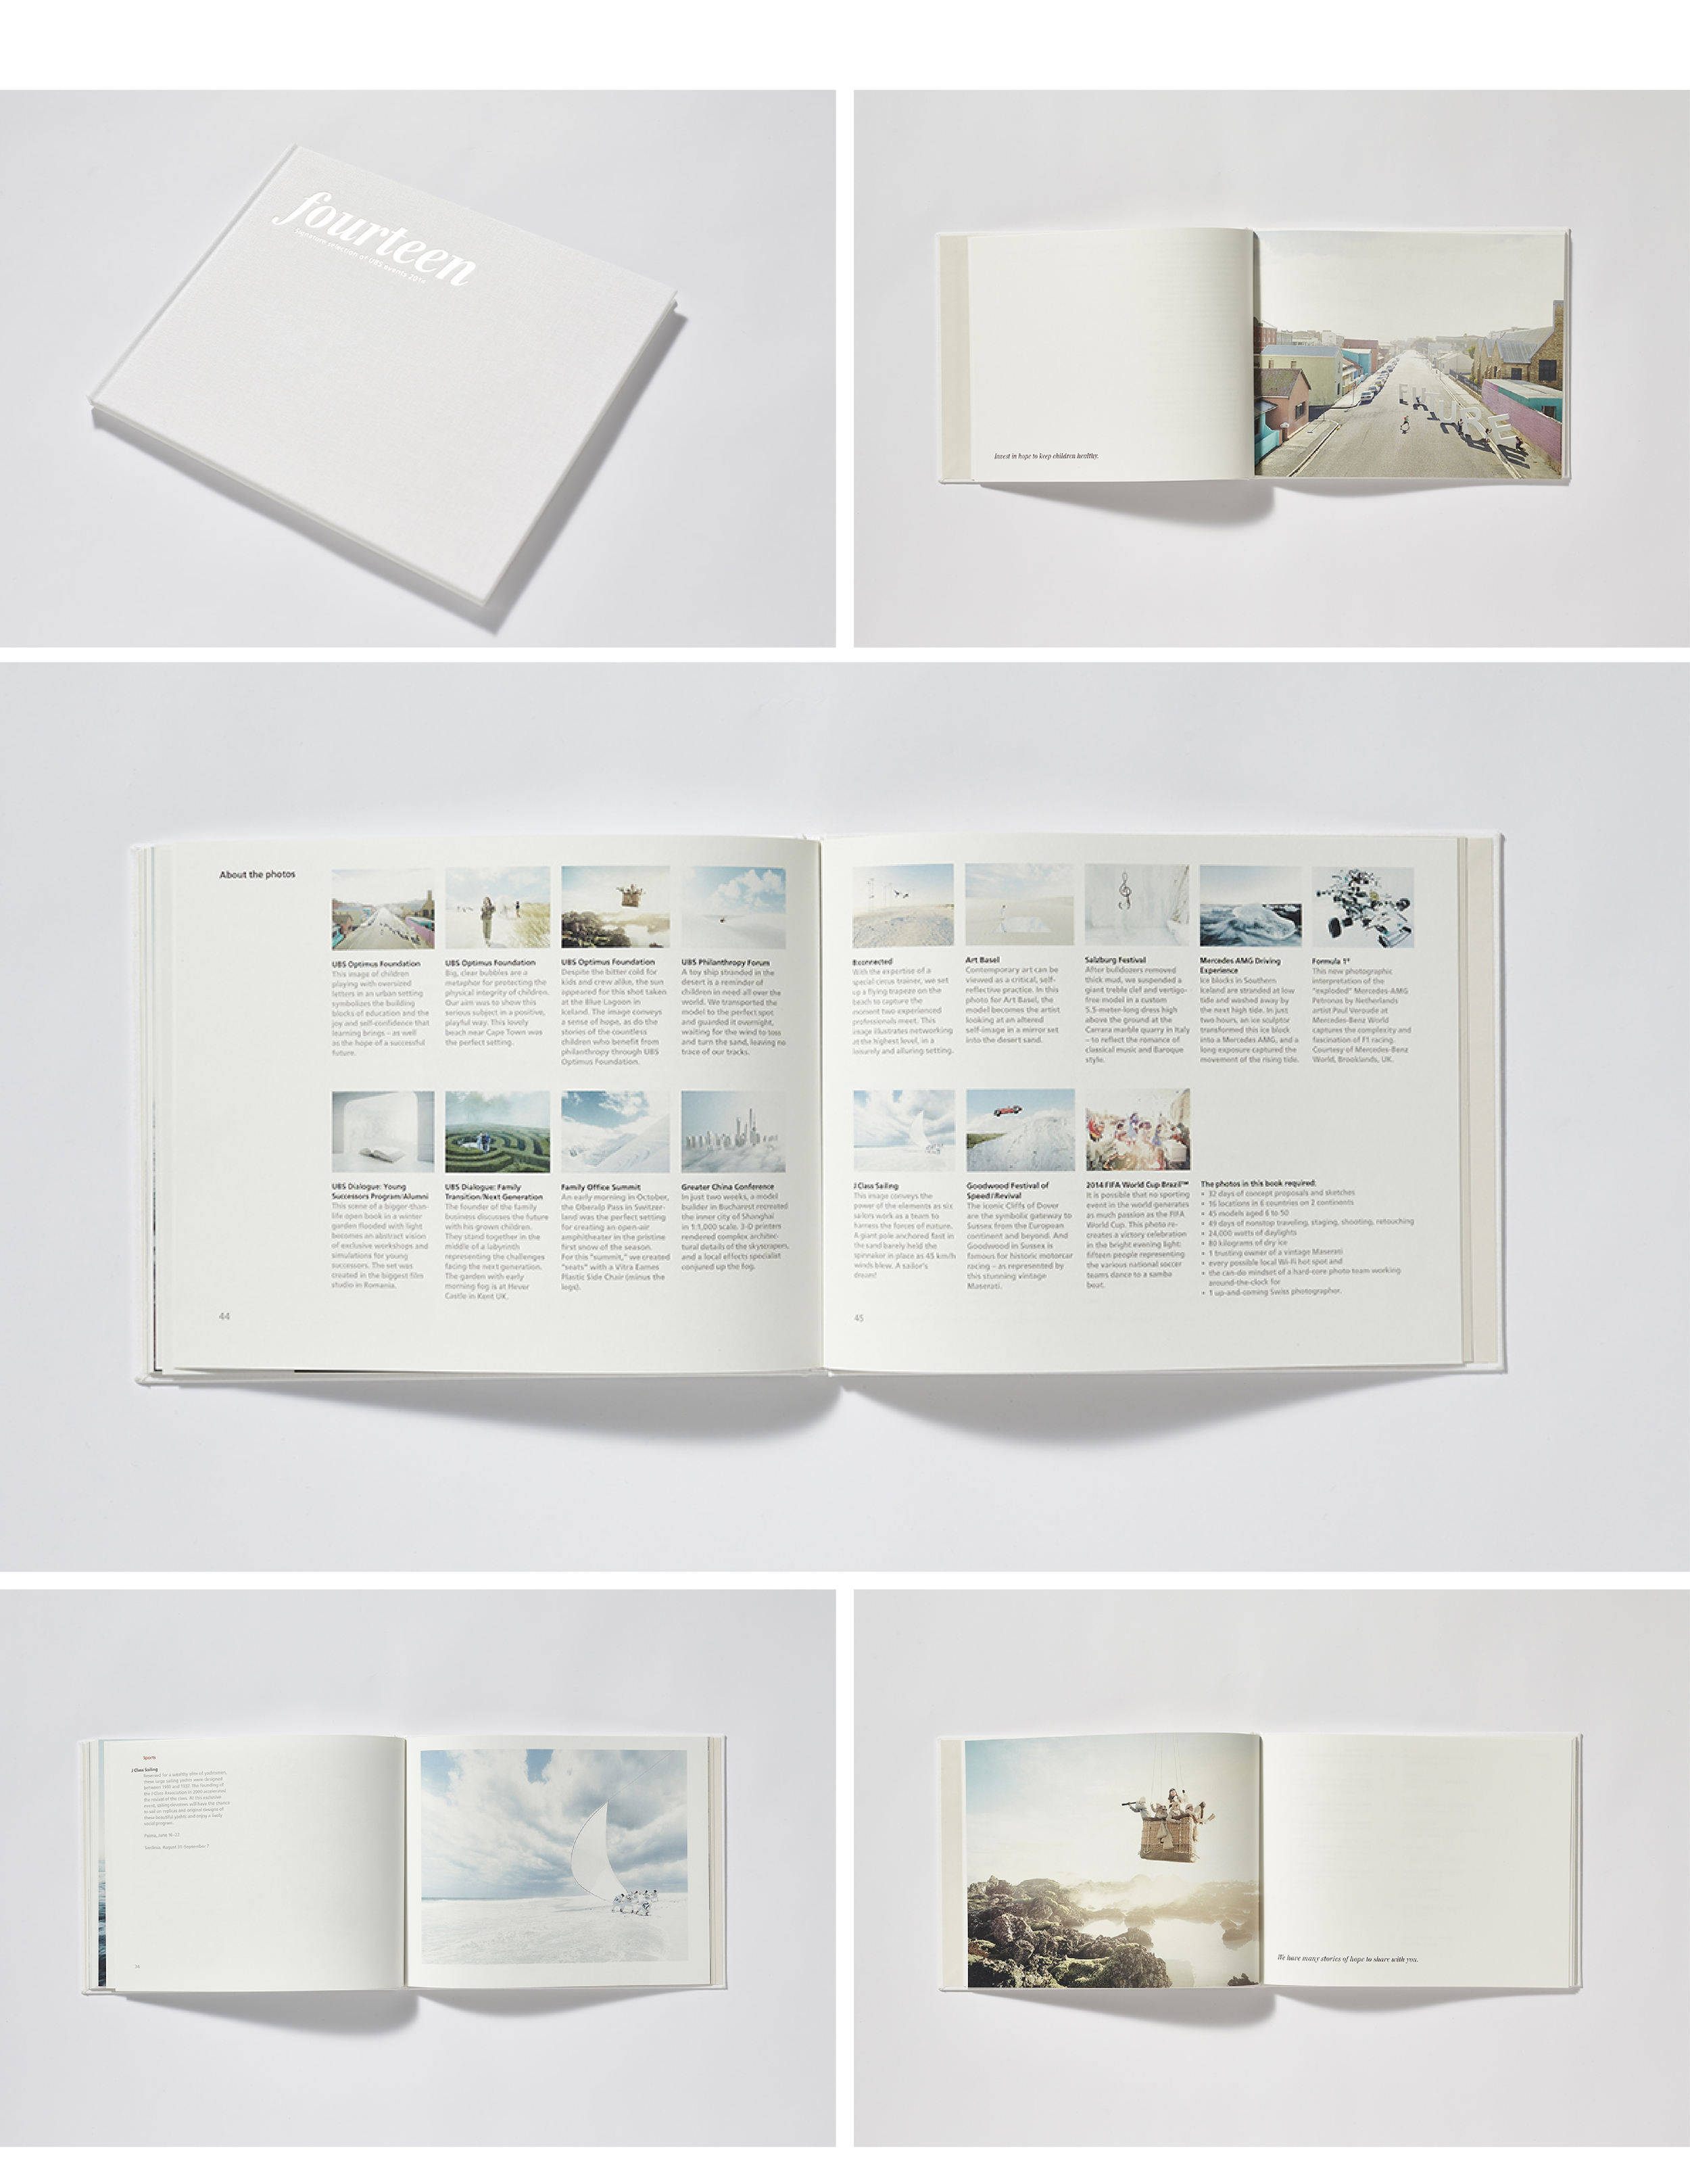 projects_layout_UBS_book.jpg